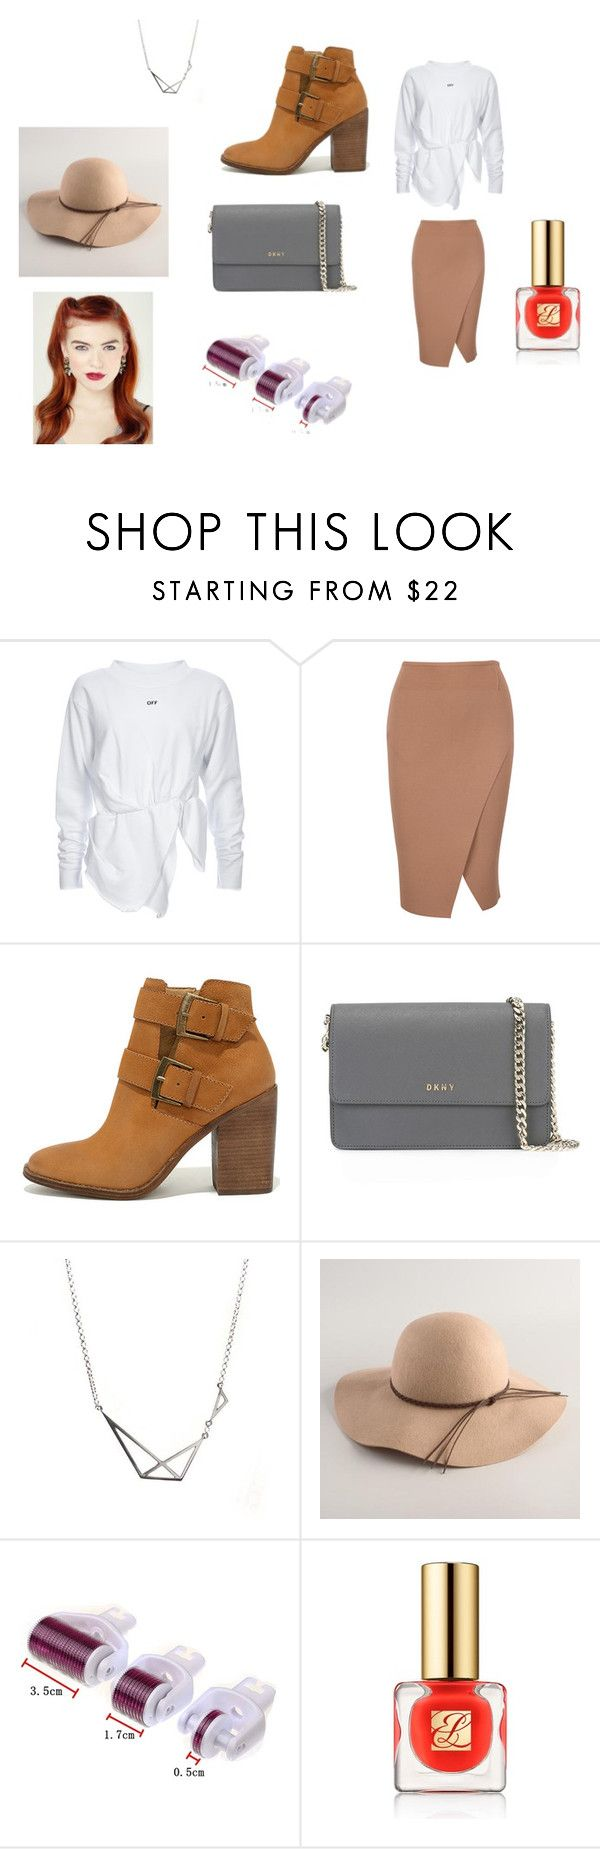 """""""Valuable lesson"""" by nadaanja ❤ liked on Polyvore featuring Steve Madden, DKNY, Cost Plus World Market and Estée Lauder"""